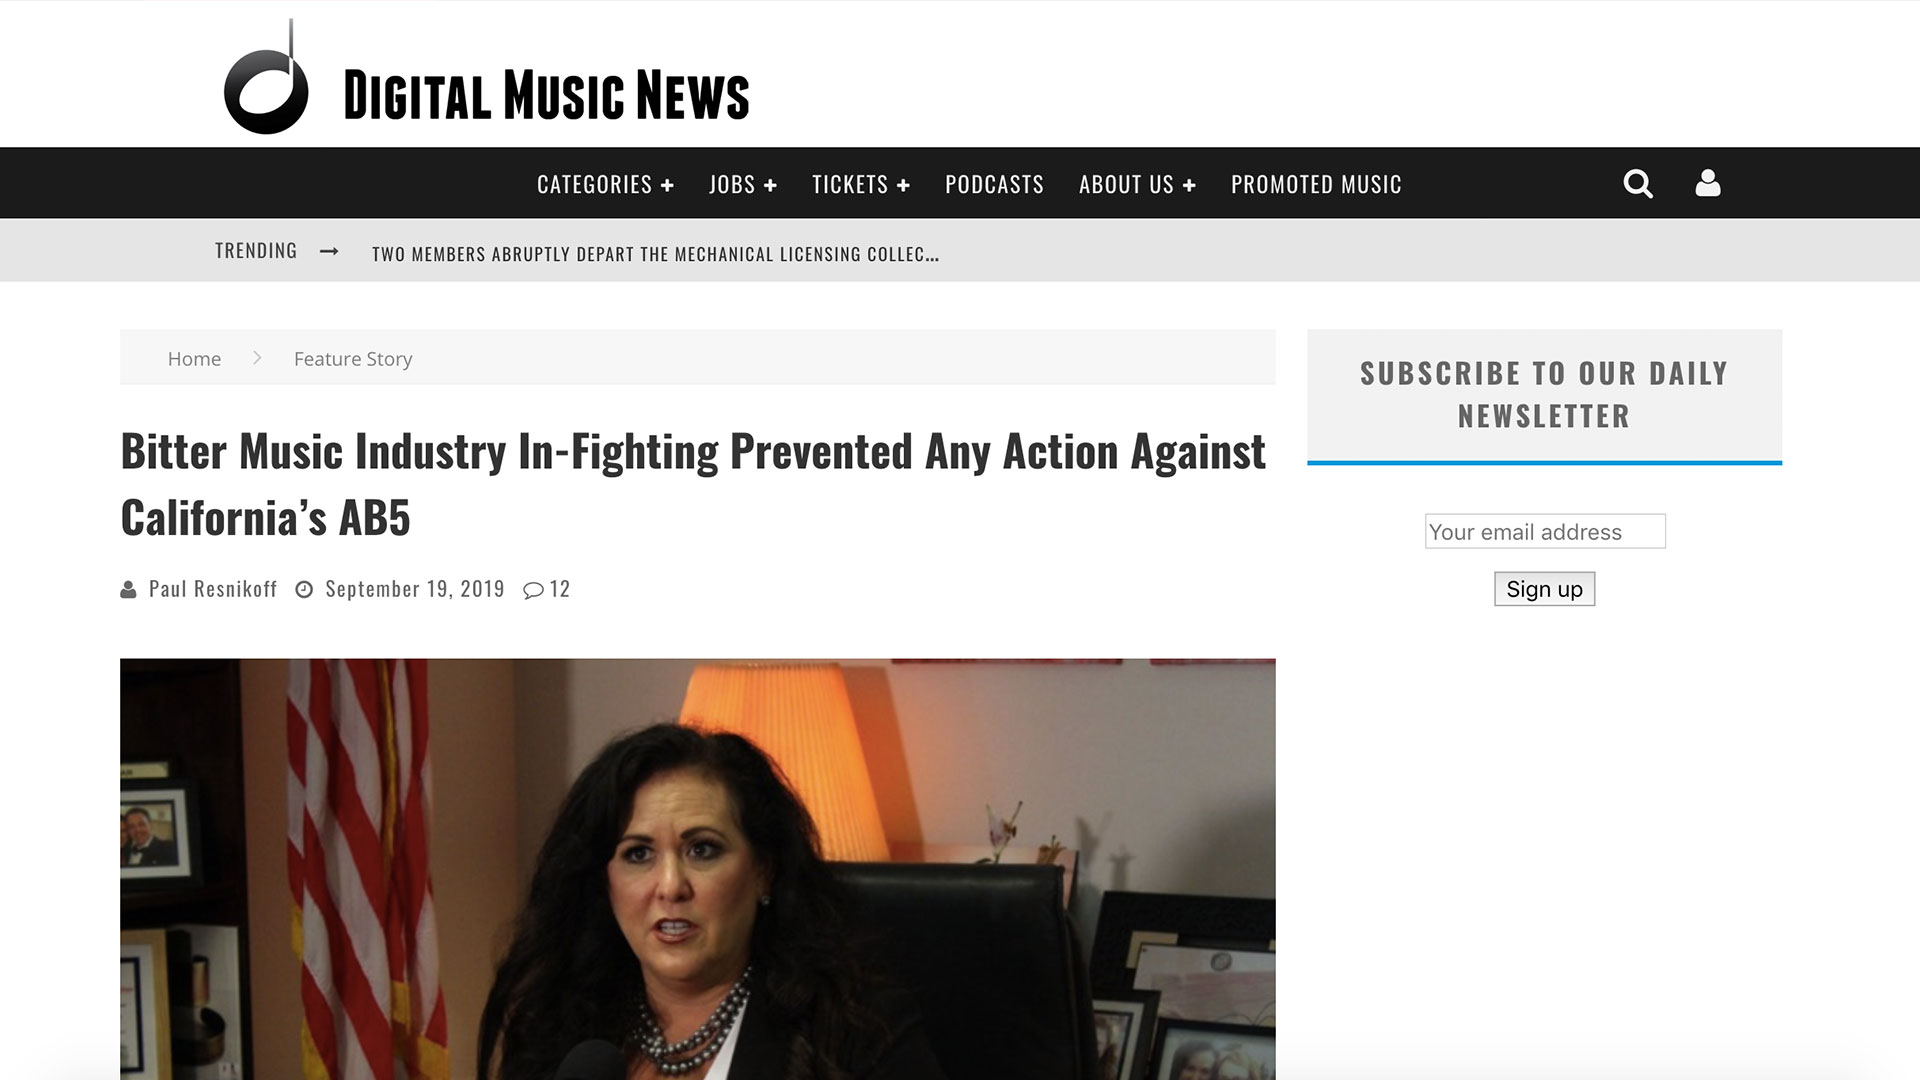 Fairness Rocks News Bitter Music Industry In-Fighting Prevented Any Action Against California's AB5